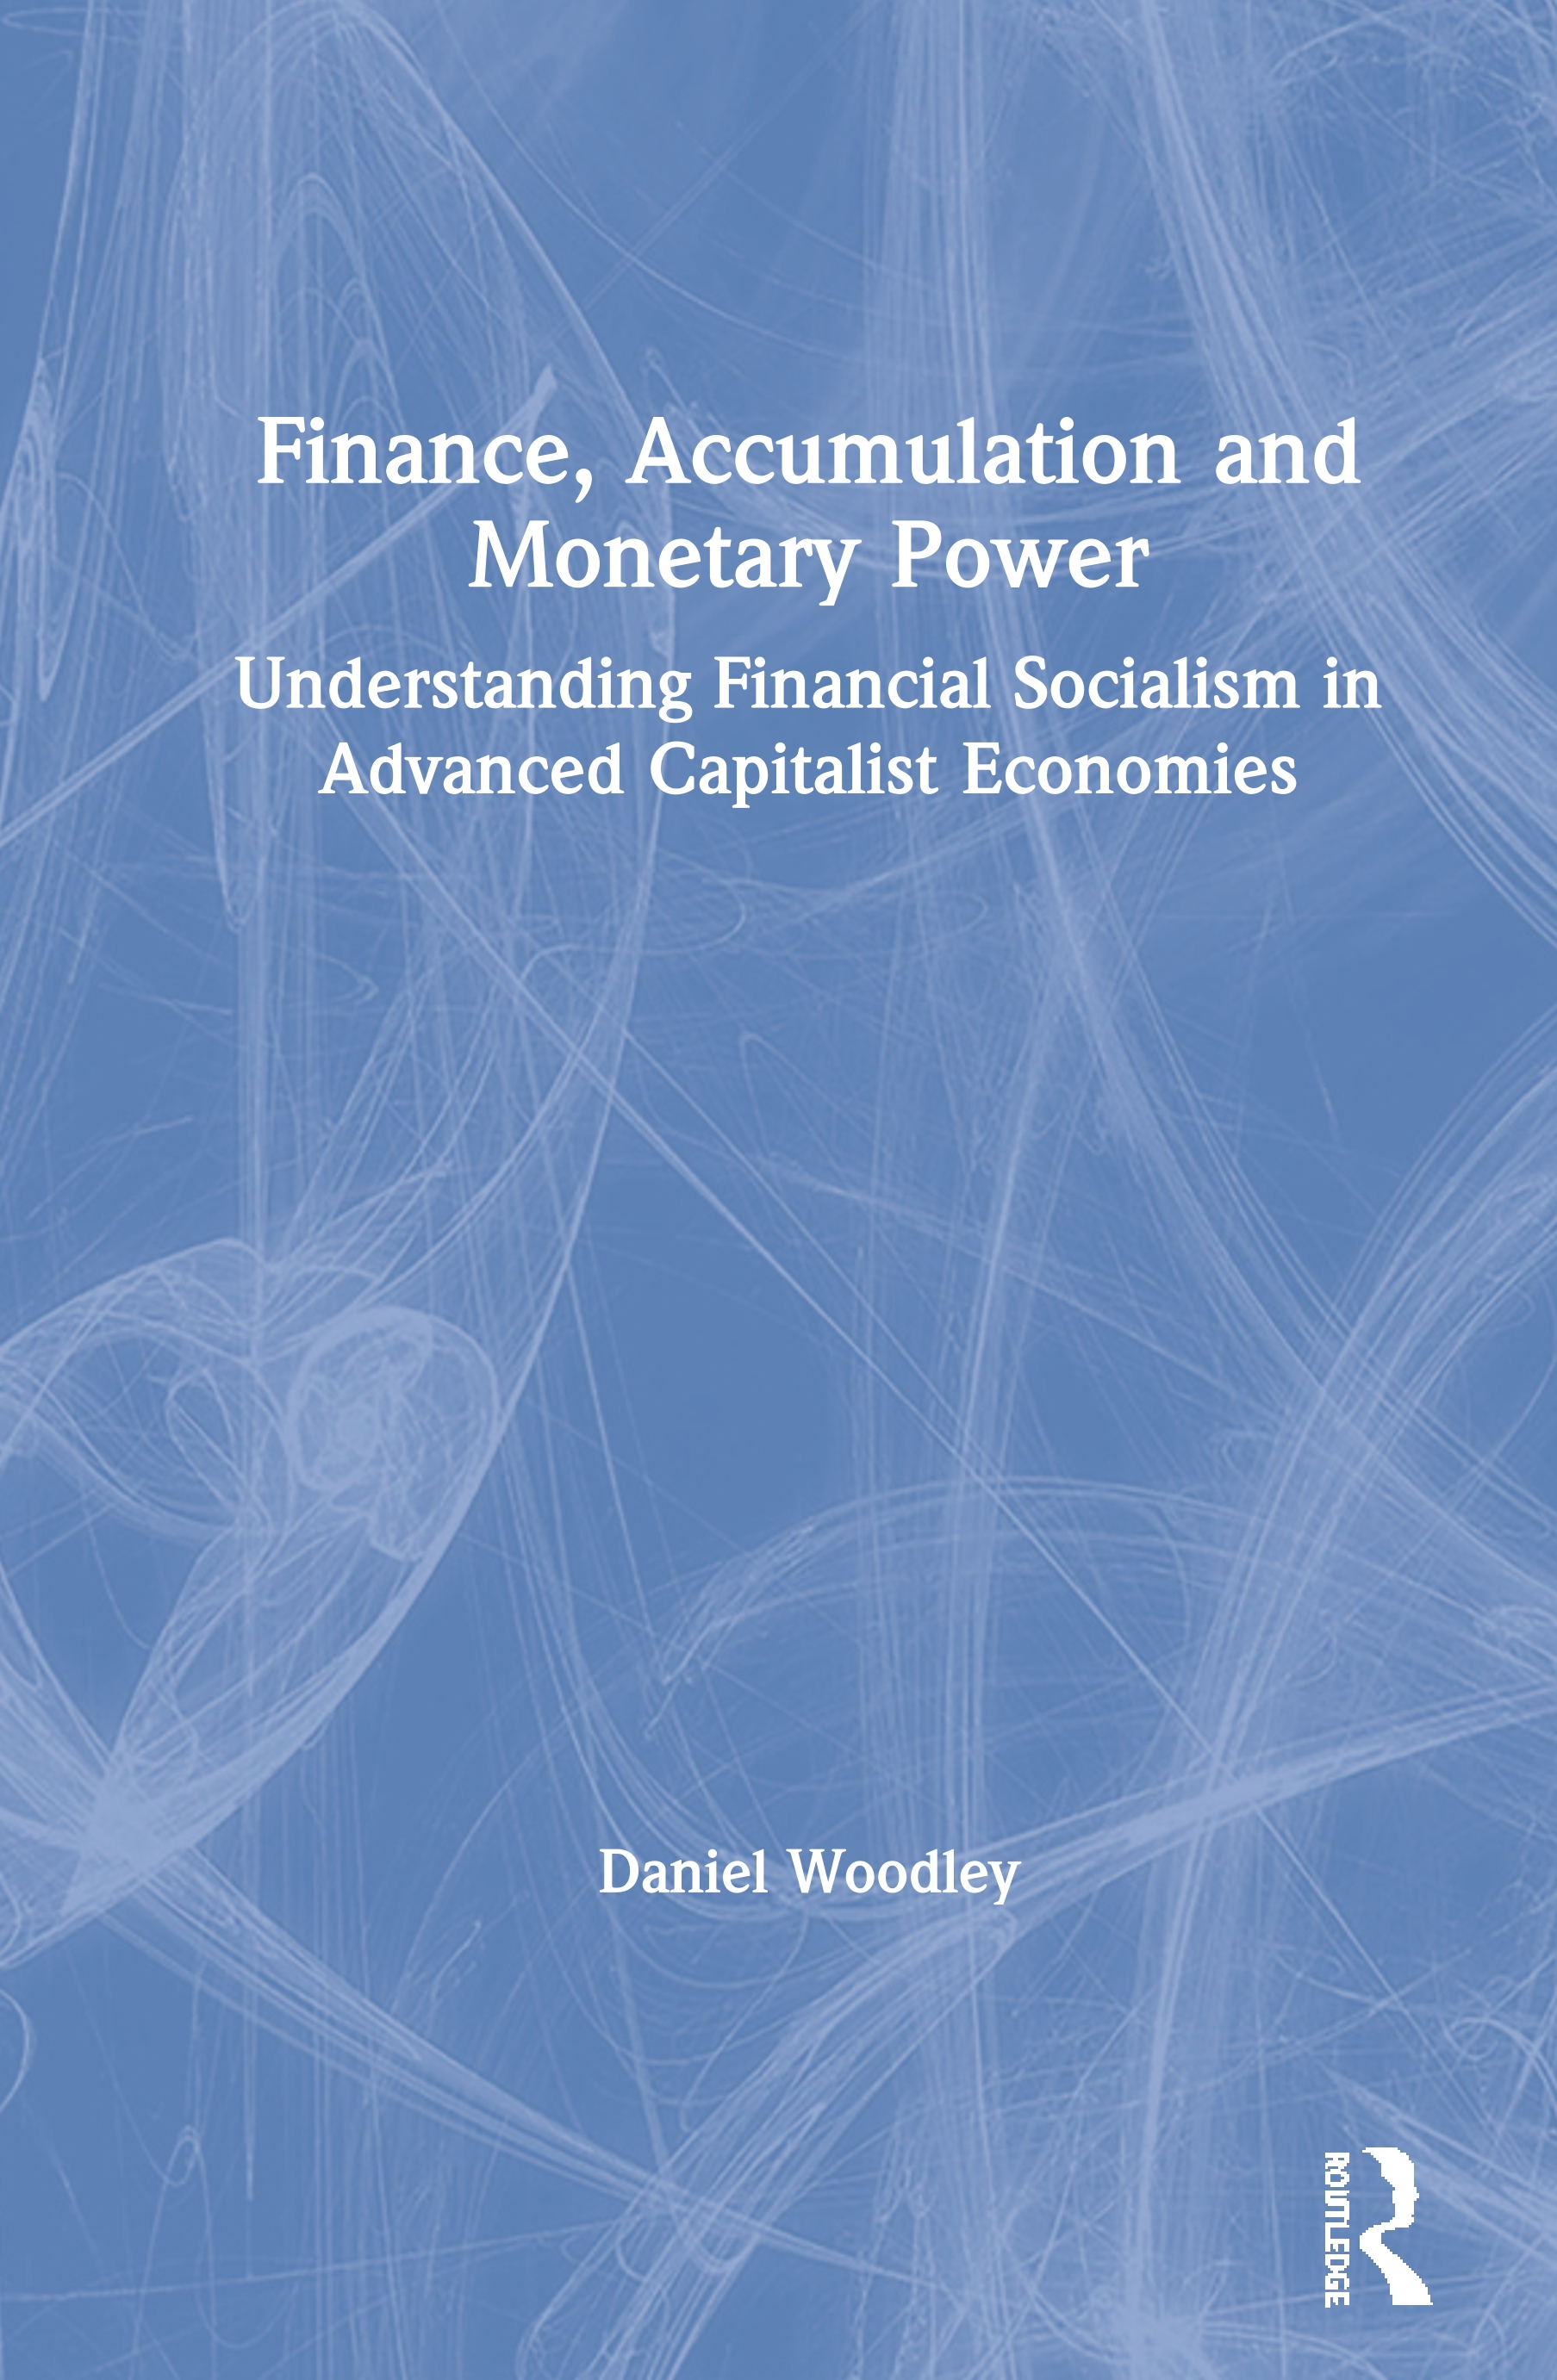 Finance, Accumulation and Monetary Power: Understanding Financial Socialism in Advanced Capitalist Economies book cover